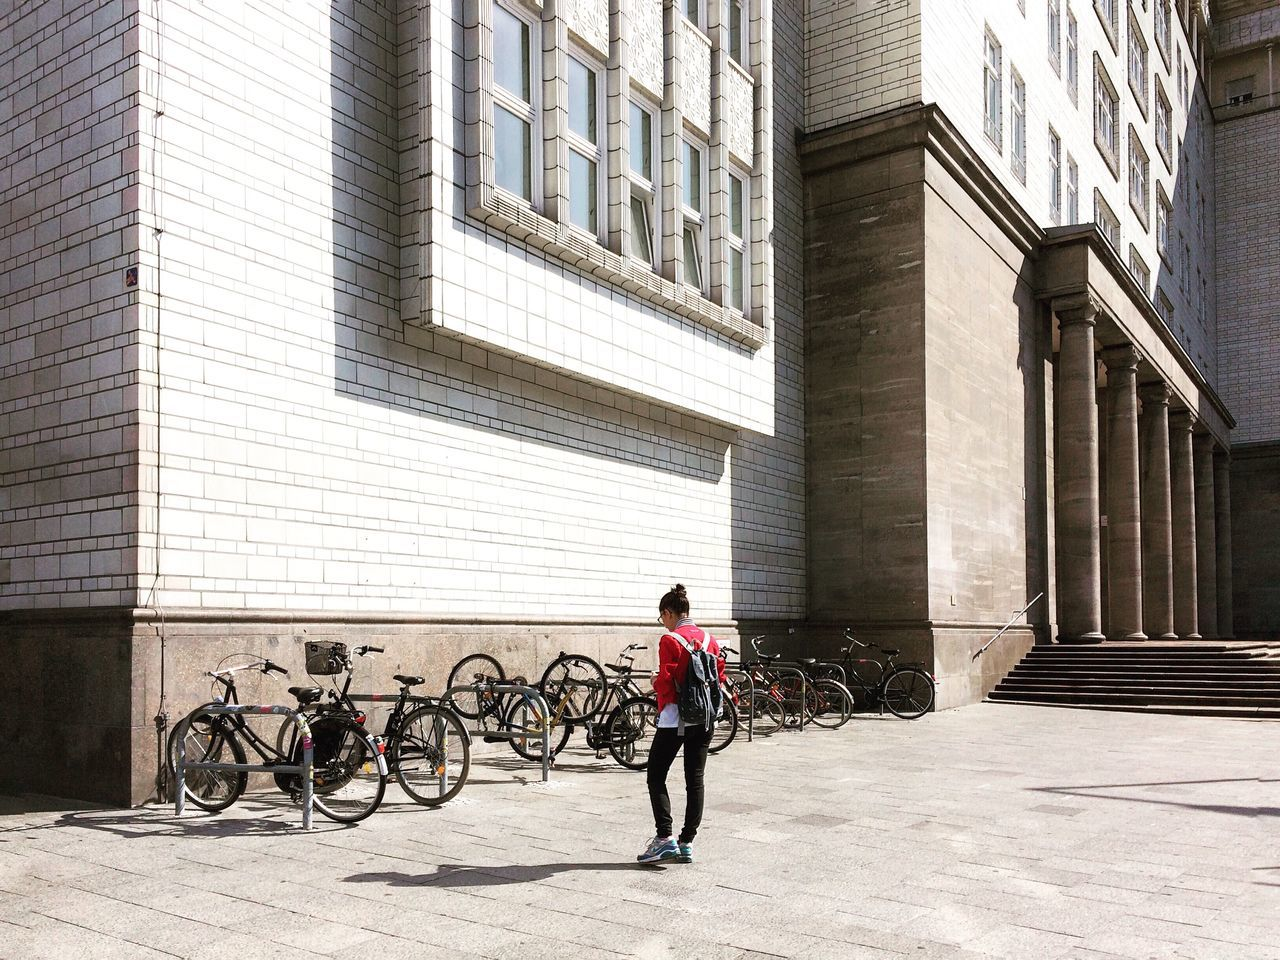 bicycle, transportation, architecture, built structure, building exterior, city life, day, city, sunlight, full length, real people, mode of transport, outdoors, one person, women, men, young adult, adult, adults only, people